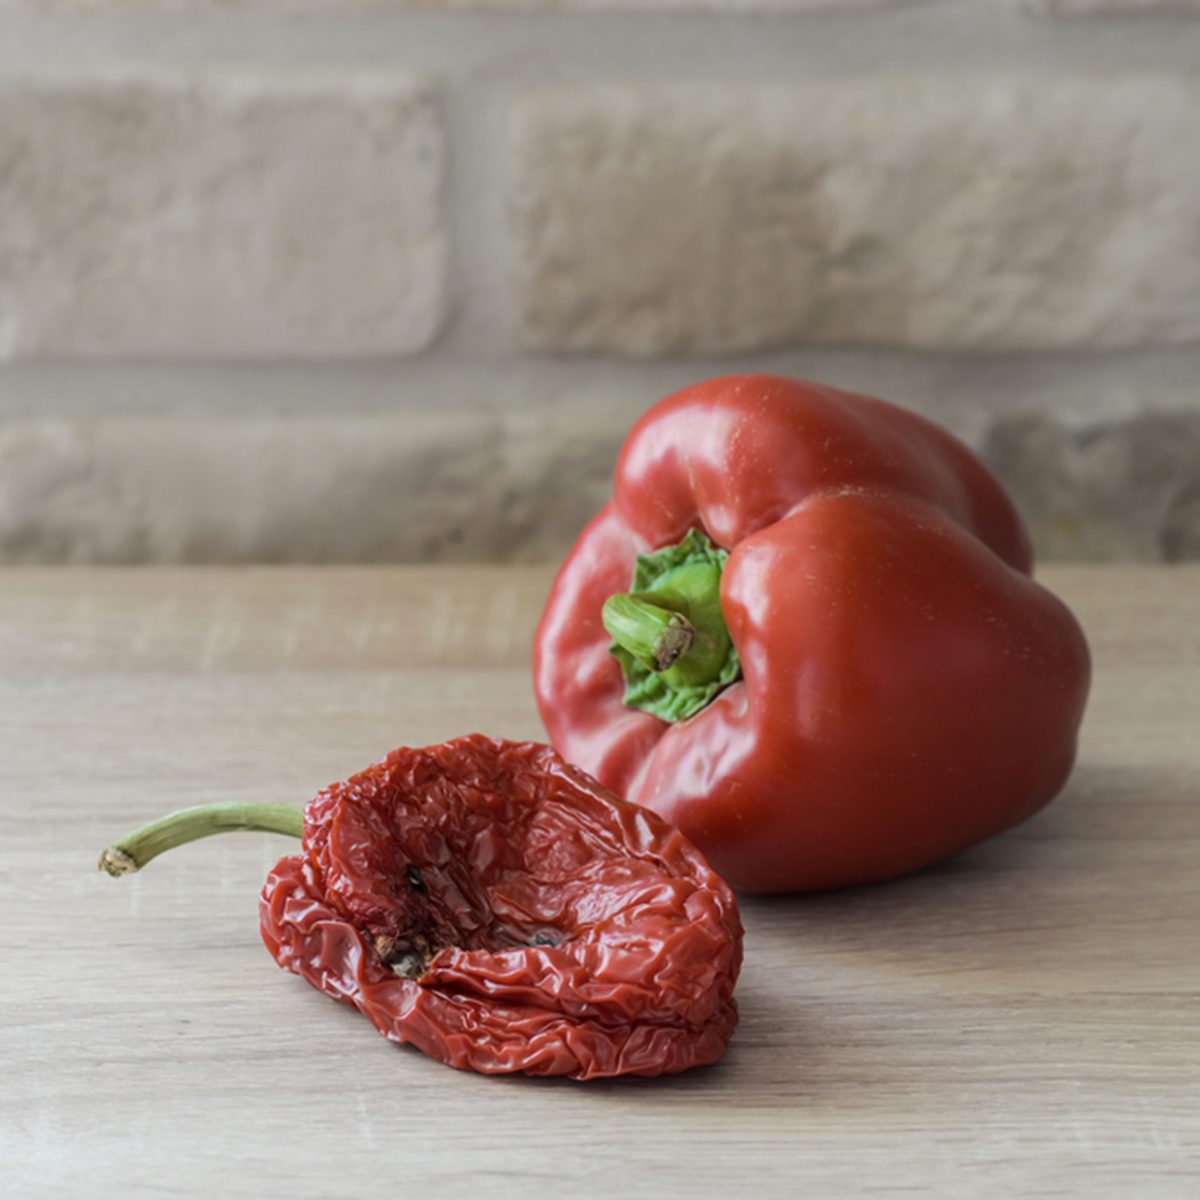 Wilted or fresh sweet pepper on a wooden table. Unhealthy or healthy food; Shutterstock ID 369647651; Job (TFH, TOH, RD, BNB, CWM, CM): TOH